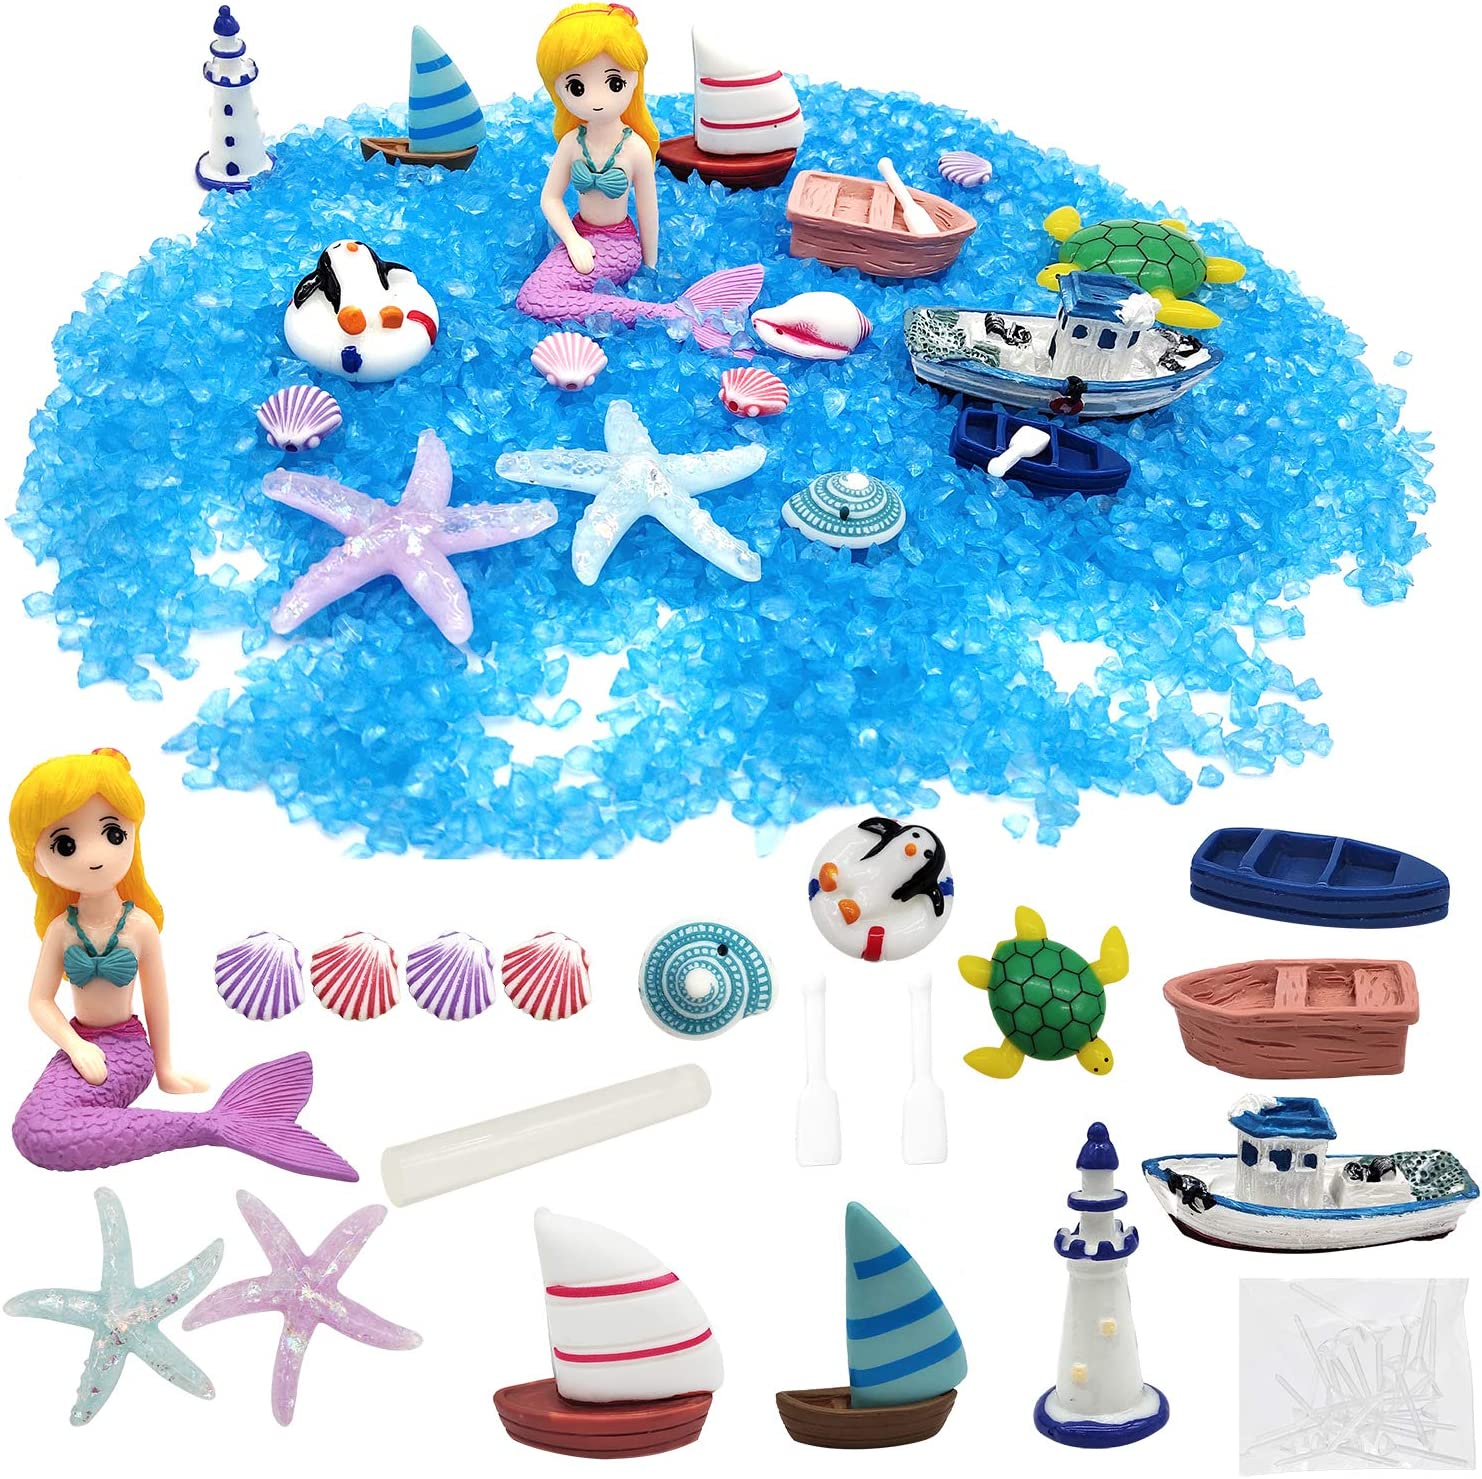 ZJW 18 Pieces Miniature Fairy Garden Accessories, Mermaid Mini Figurines Ornaments Decorations DIY Kit for Fairy Garden, Dollhouse